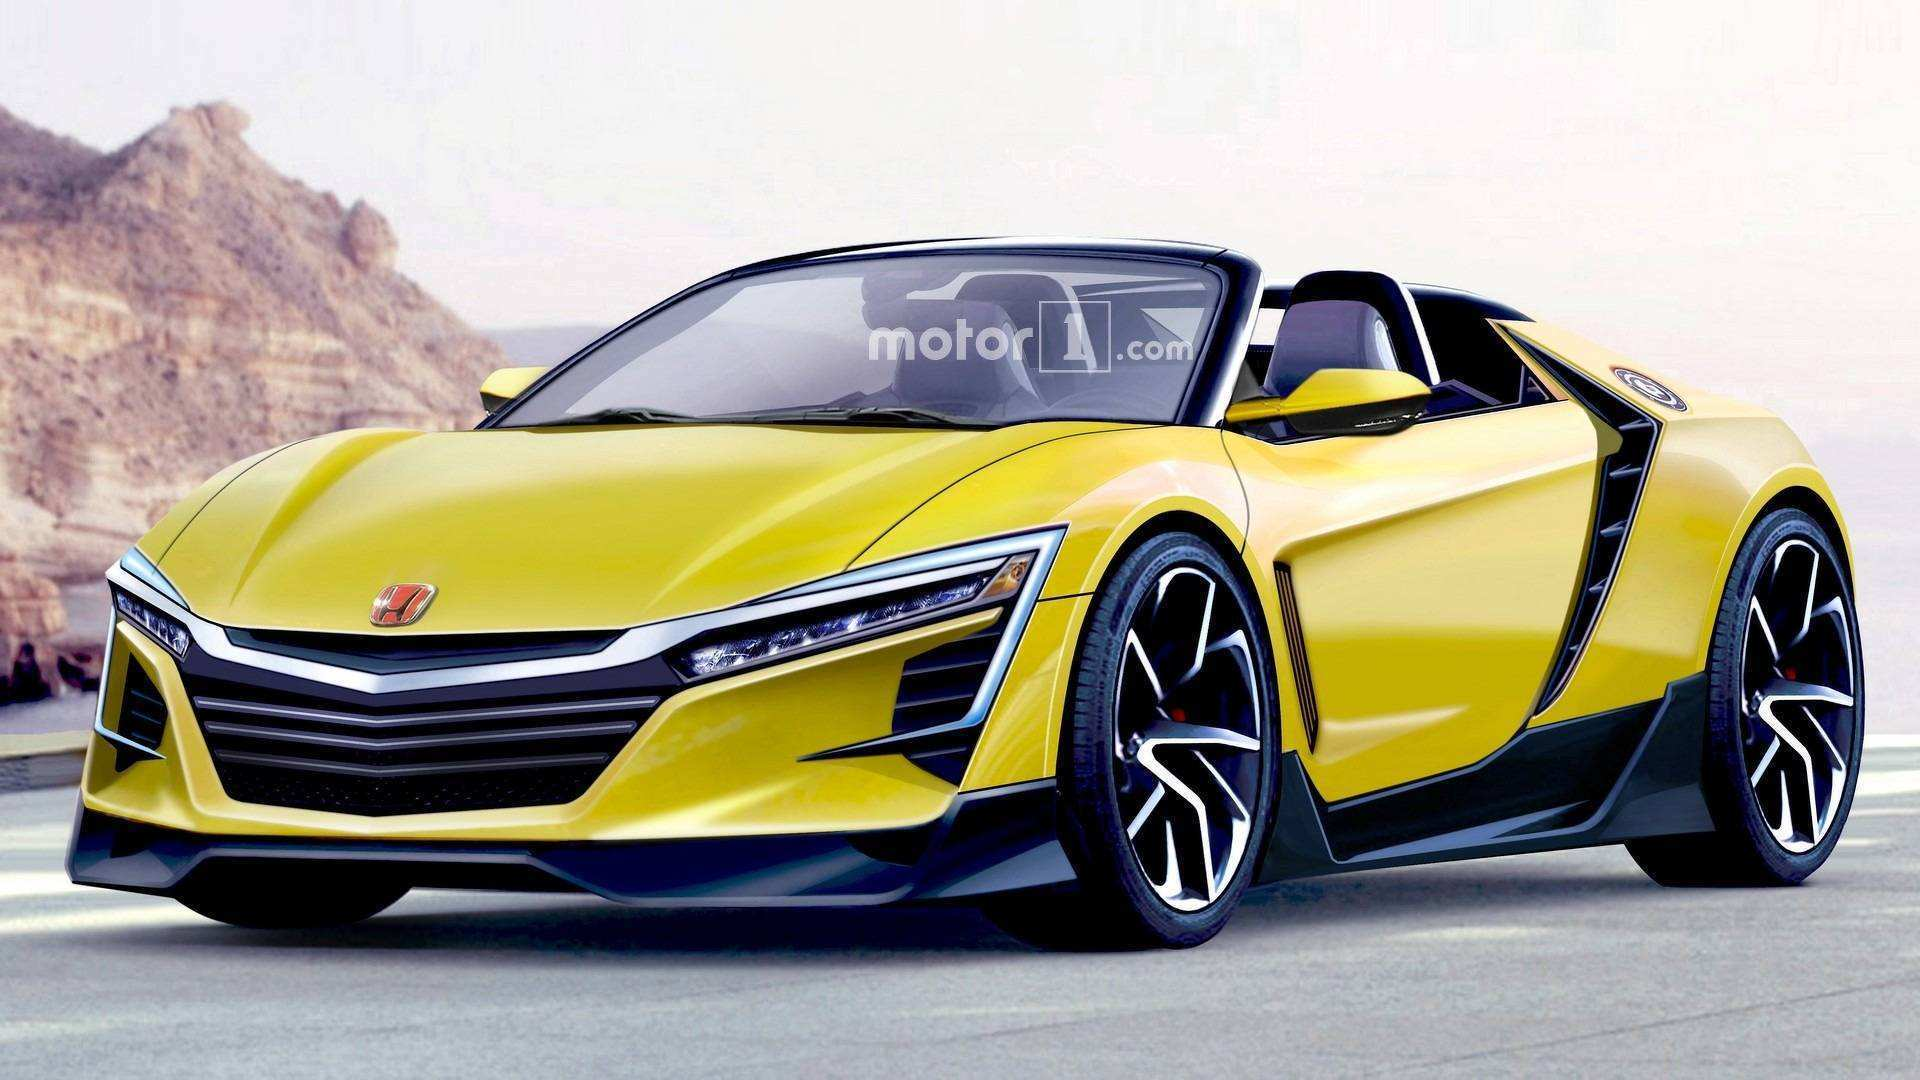 13 The 2019 Honda S2000and Pictures